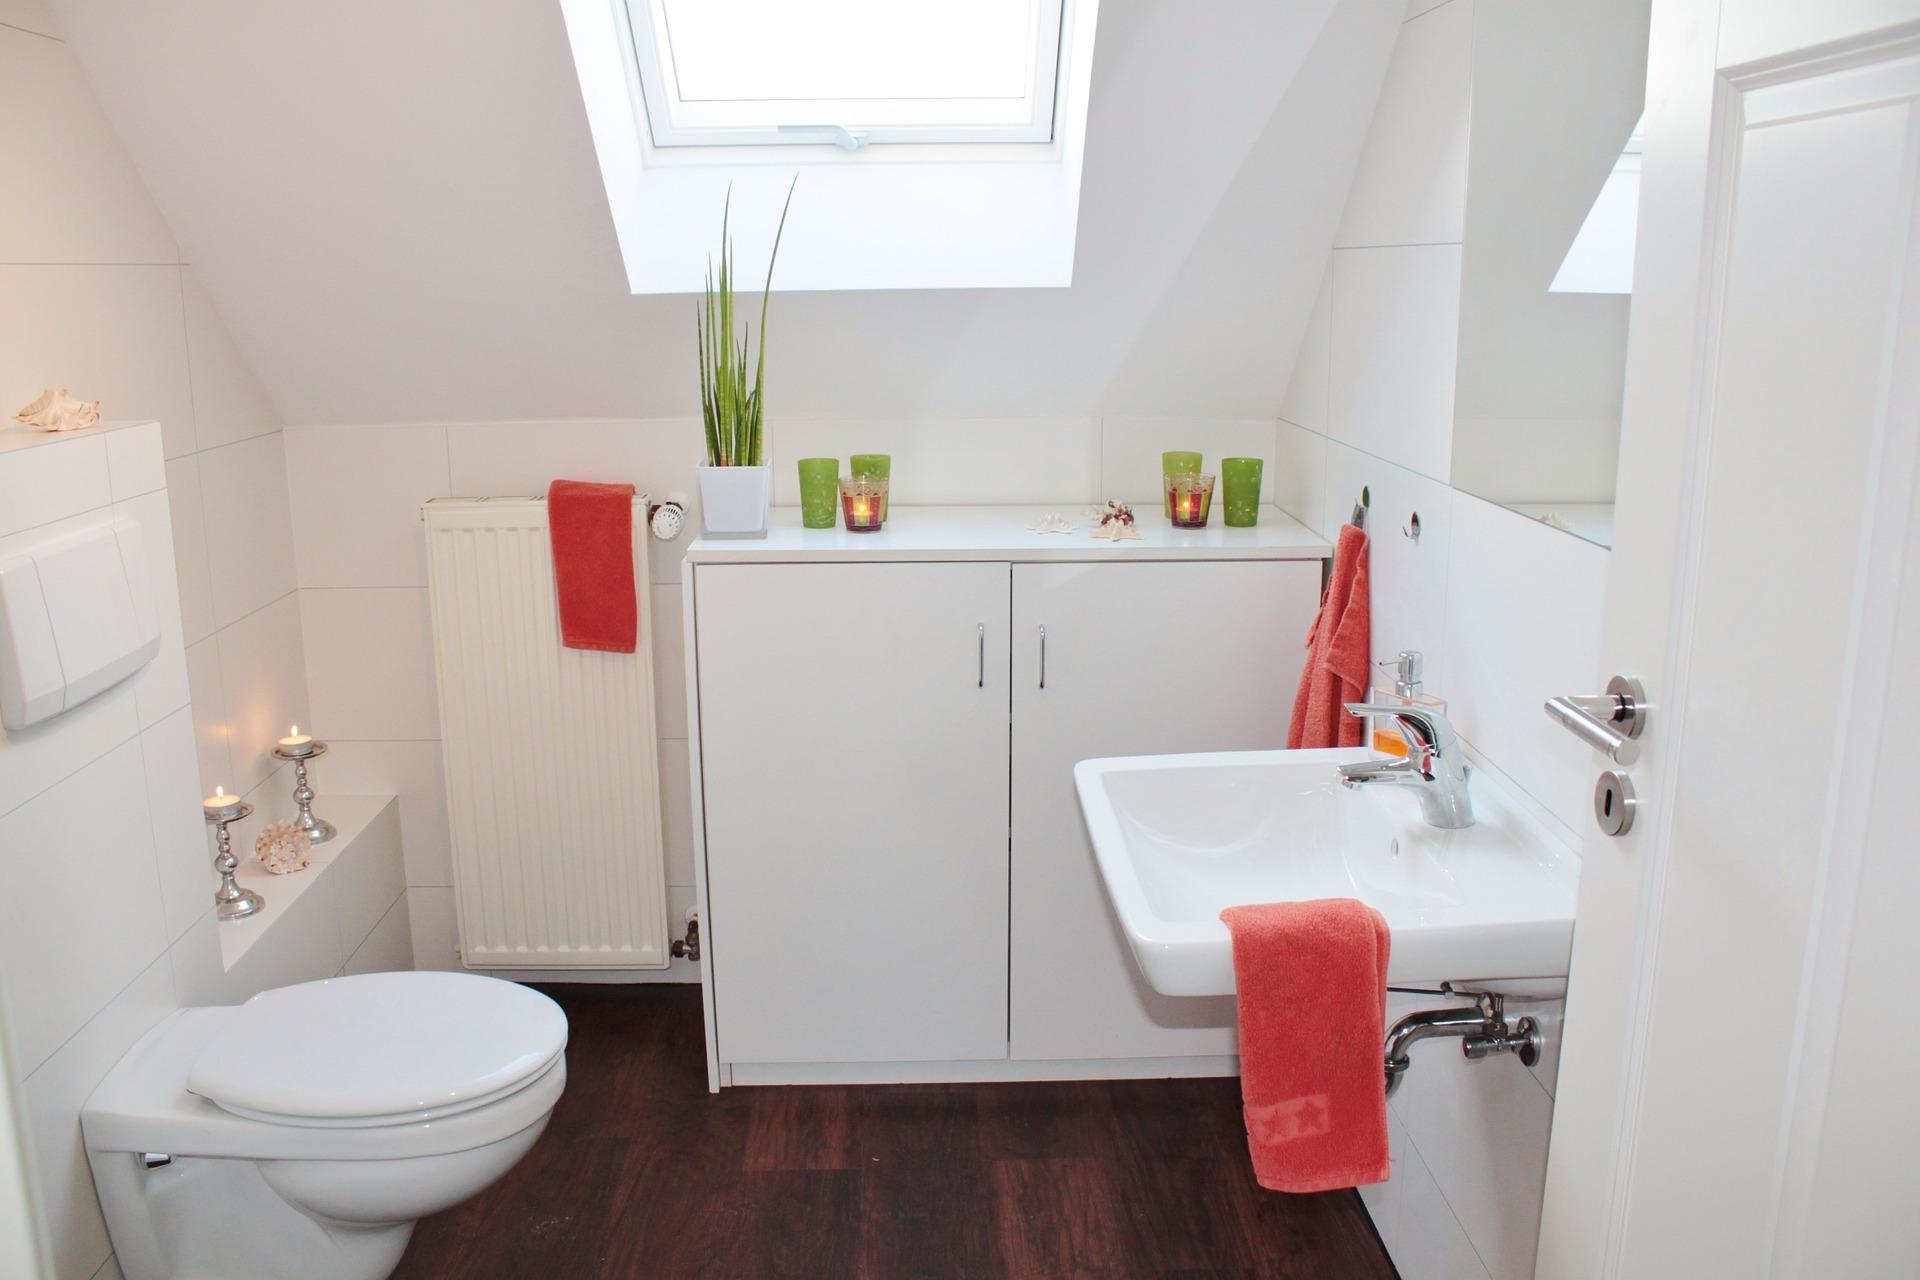 Tips to Keep Your Bathroom Smelling Fresh's featured image